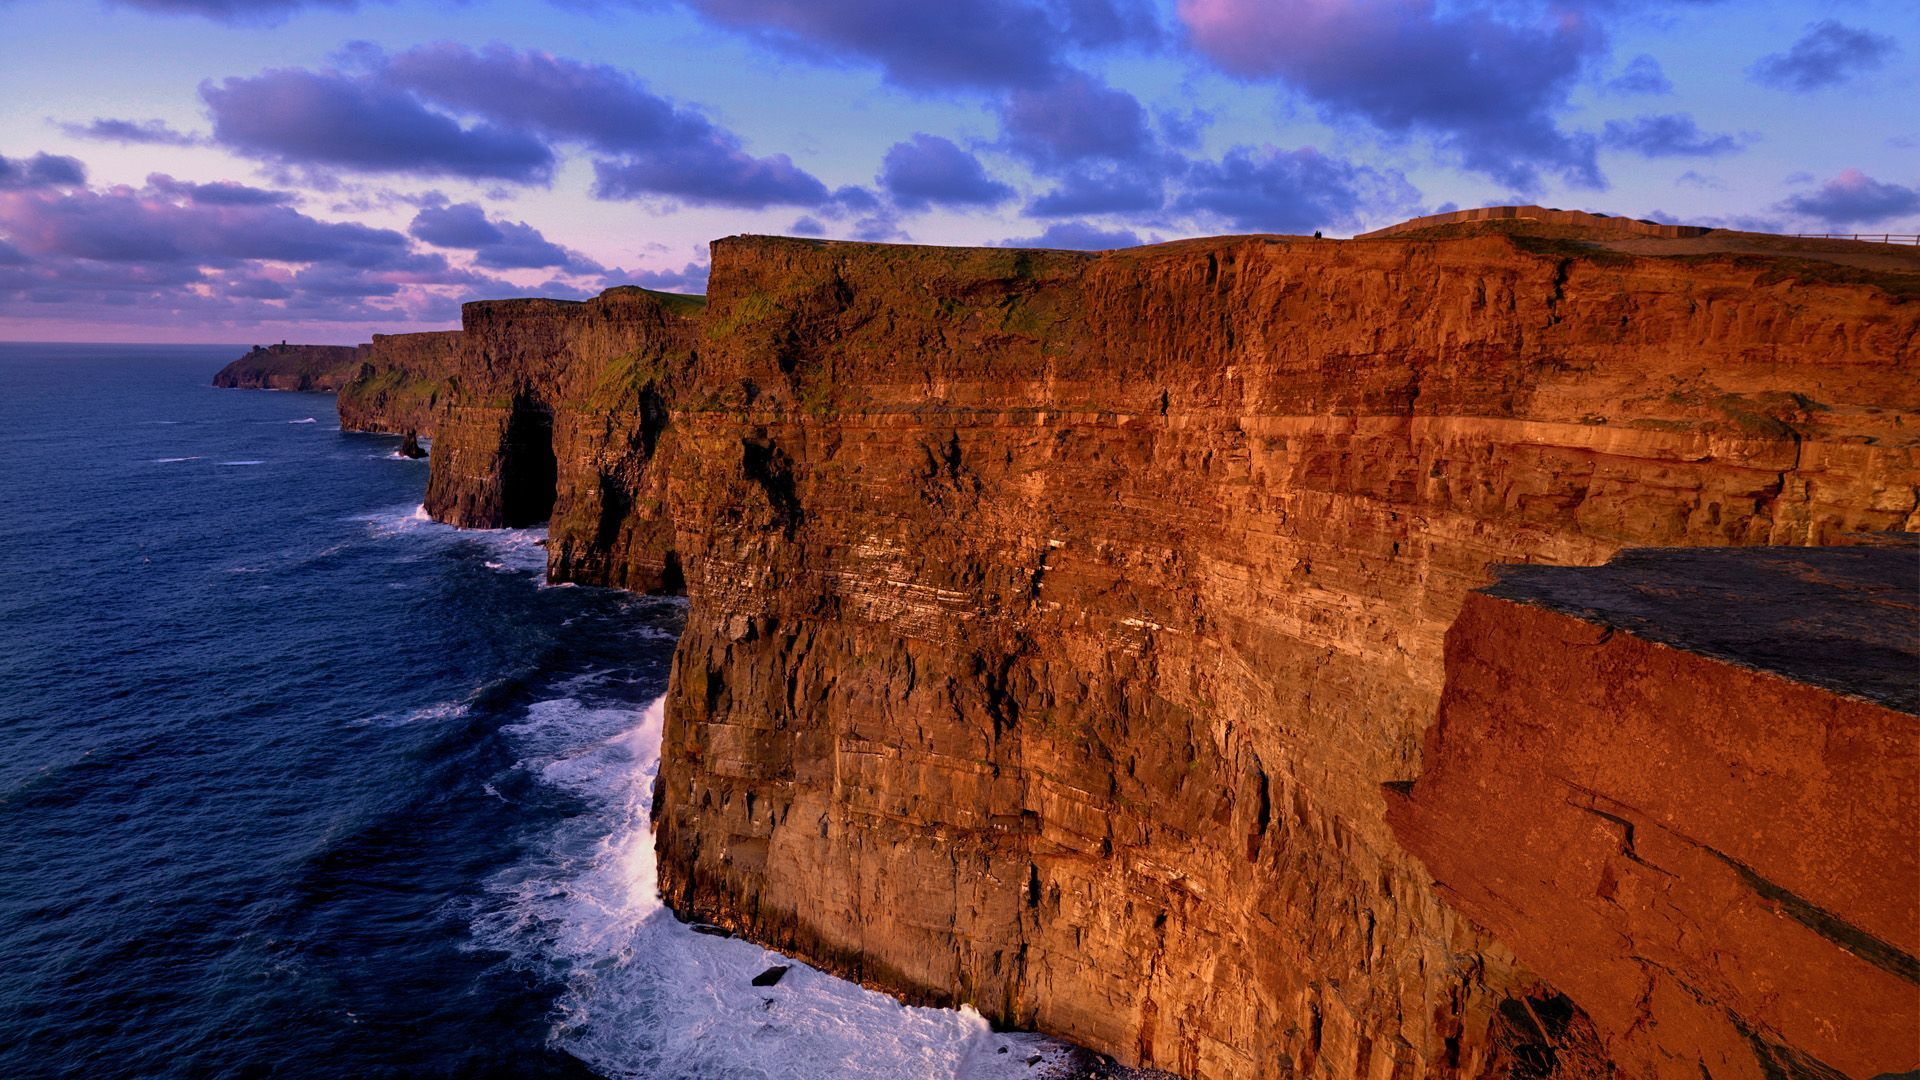 40 cliffs of moher ireland wallpaper on wallpapersafari - Cliffs of moher pictures ...